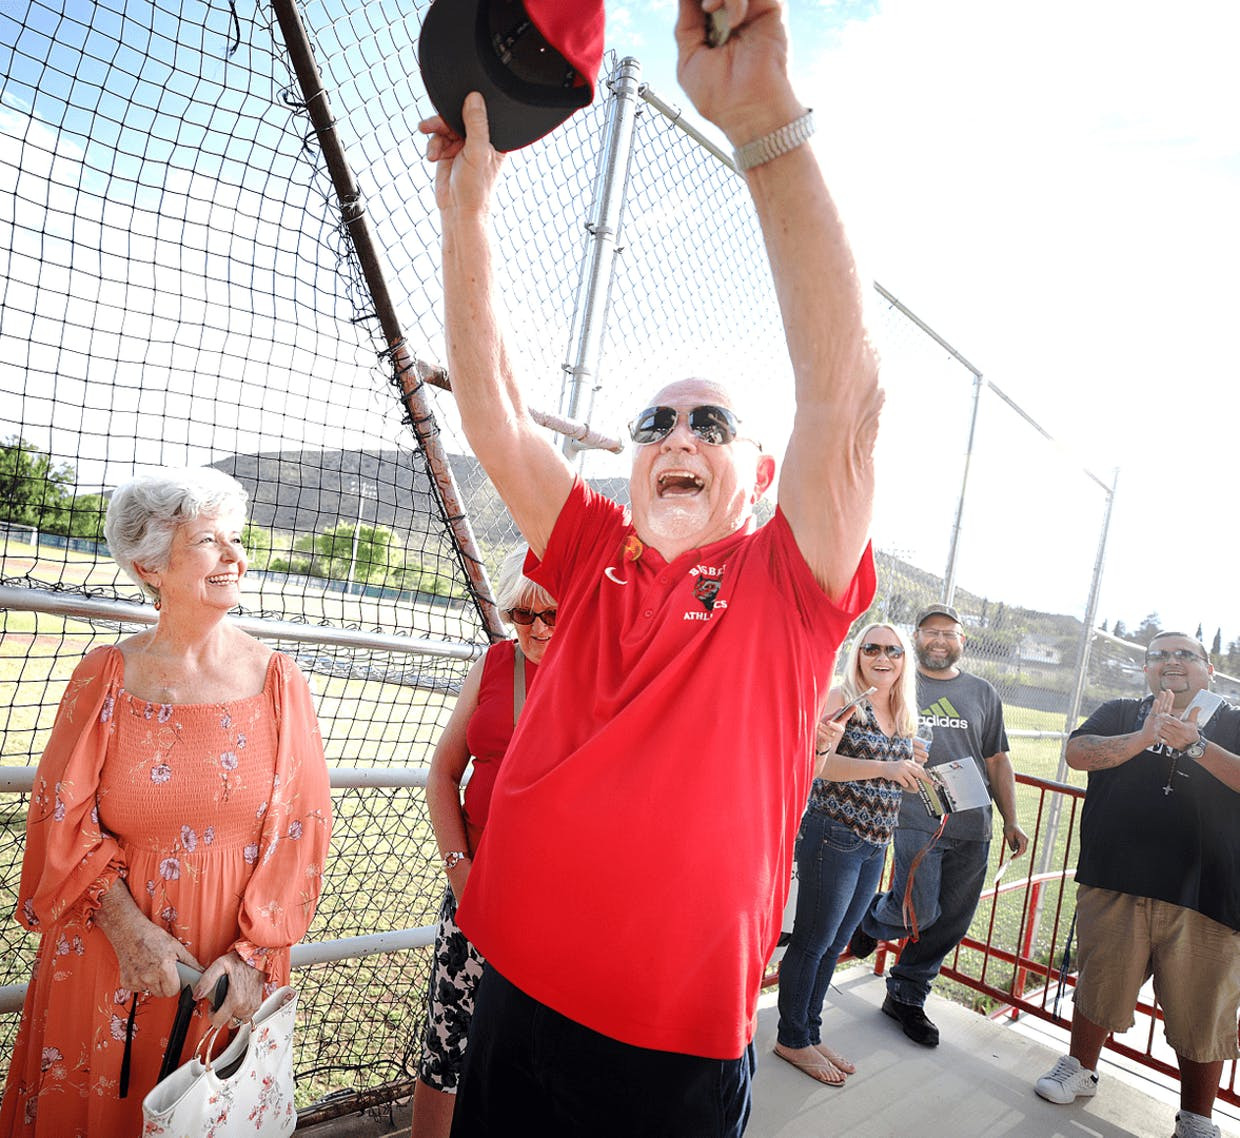 Bisbee baseball legend Mike Frosco sends a cheer right back to friends, family, former teammates and players in the Warren Ballpark stands as they applaud his appearance during Saturday's dedication naming the field after him. Frosco's wife Sharon is at his side.